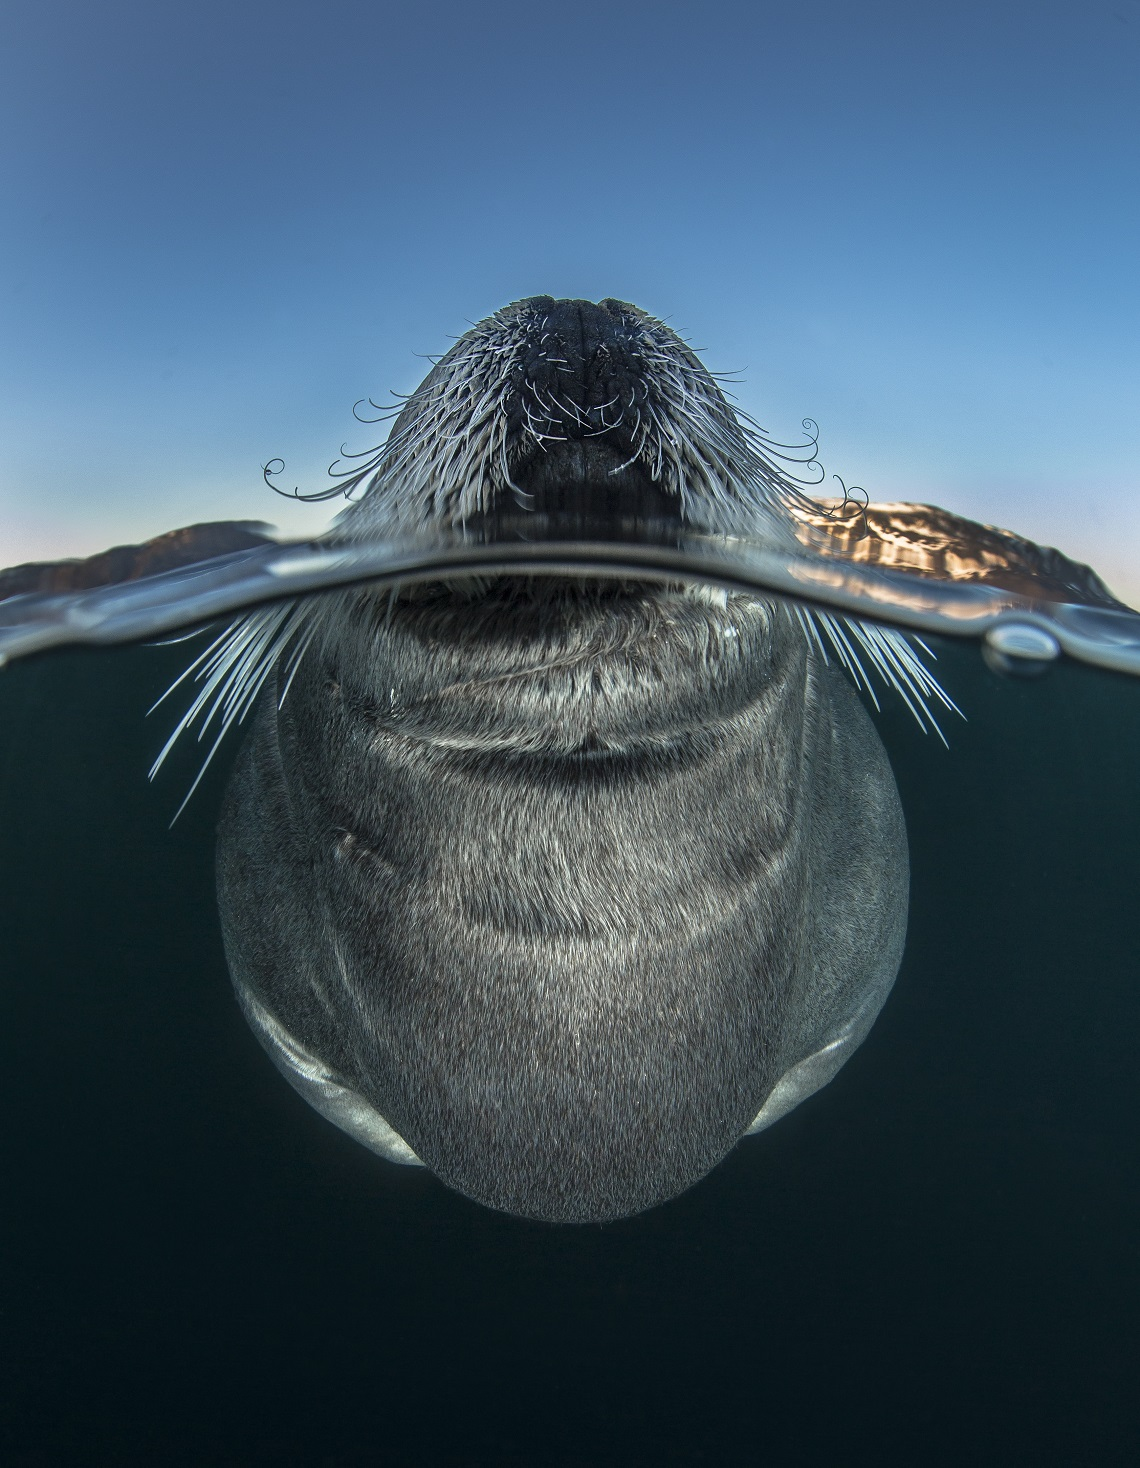 Wildlife photographer of the year-Audun Rikardsen